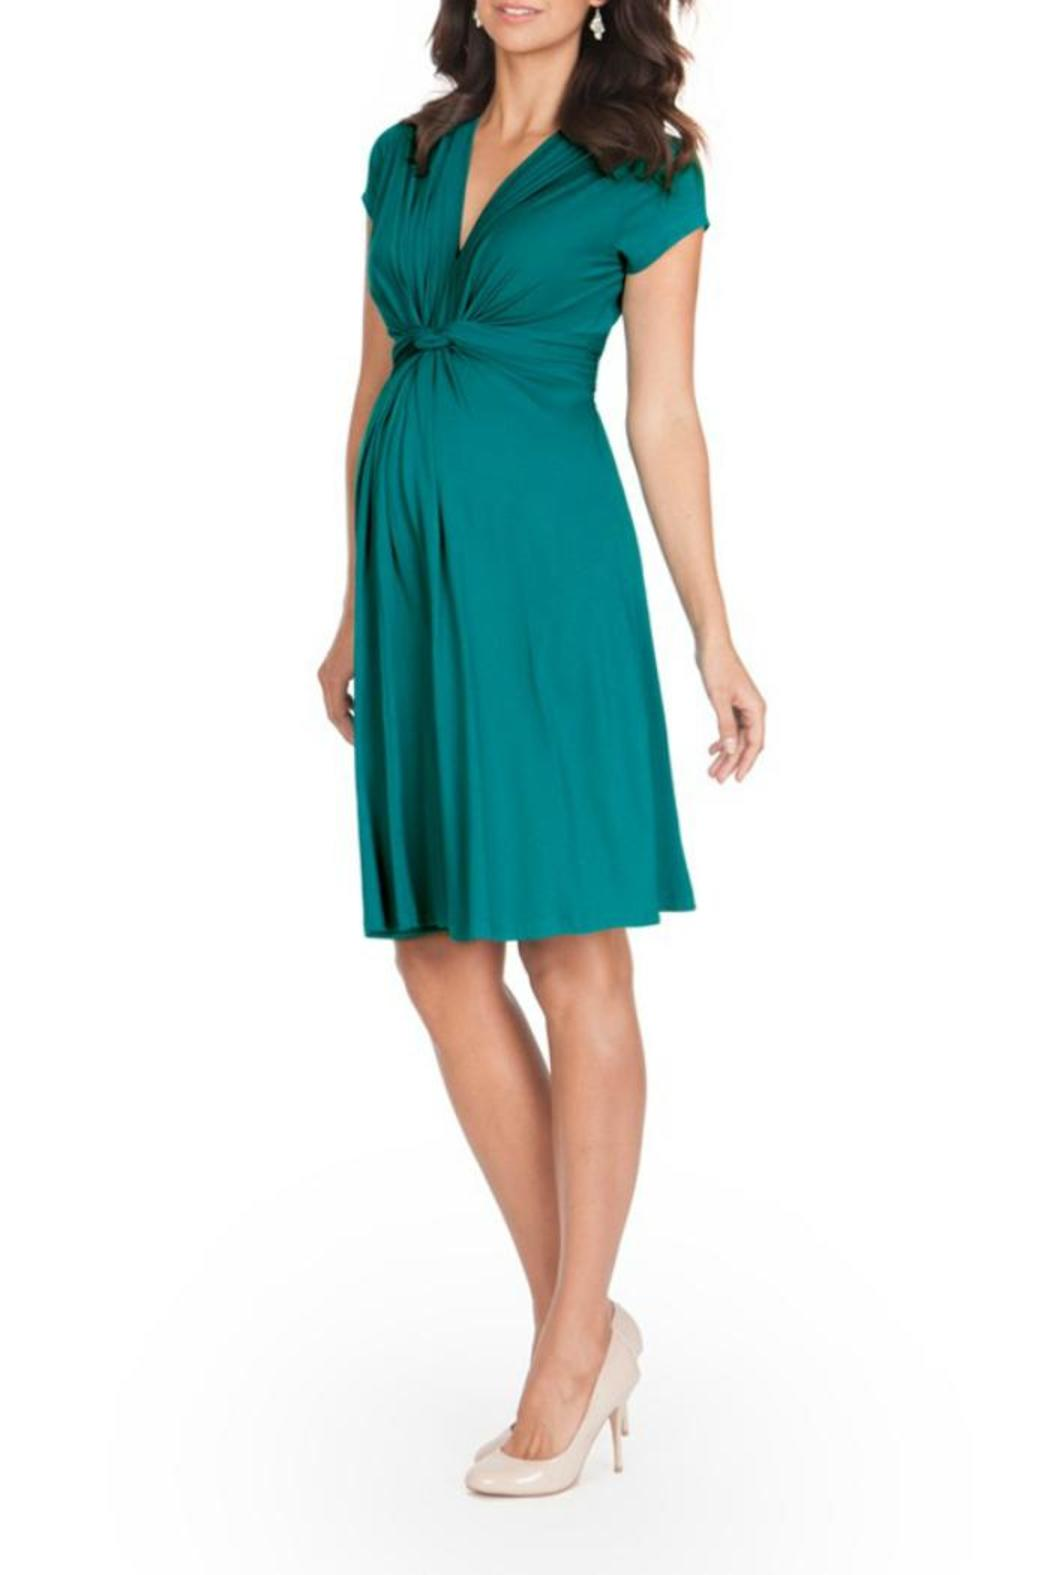 b0e147200790c Seraphine Jolene Dress Green from Alabama by The Swanky Stork ...